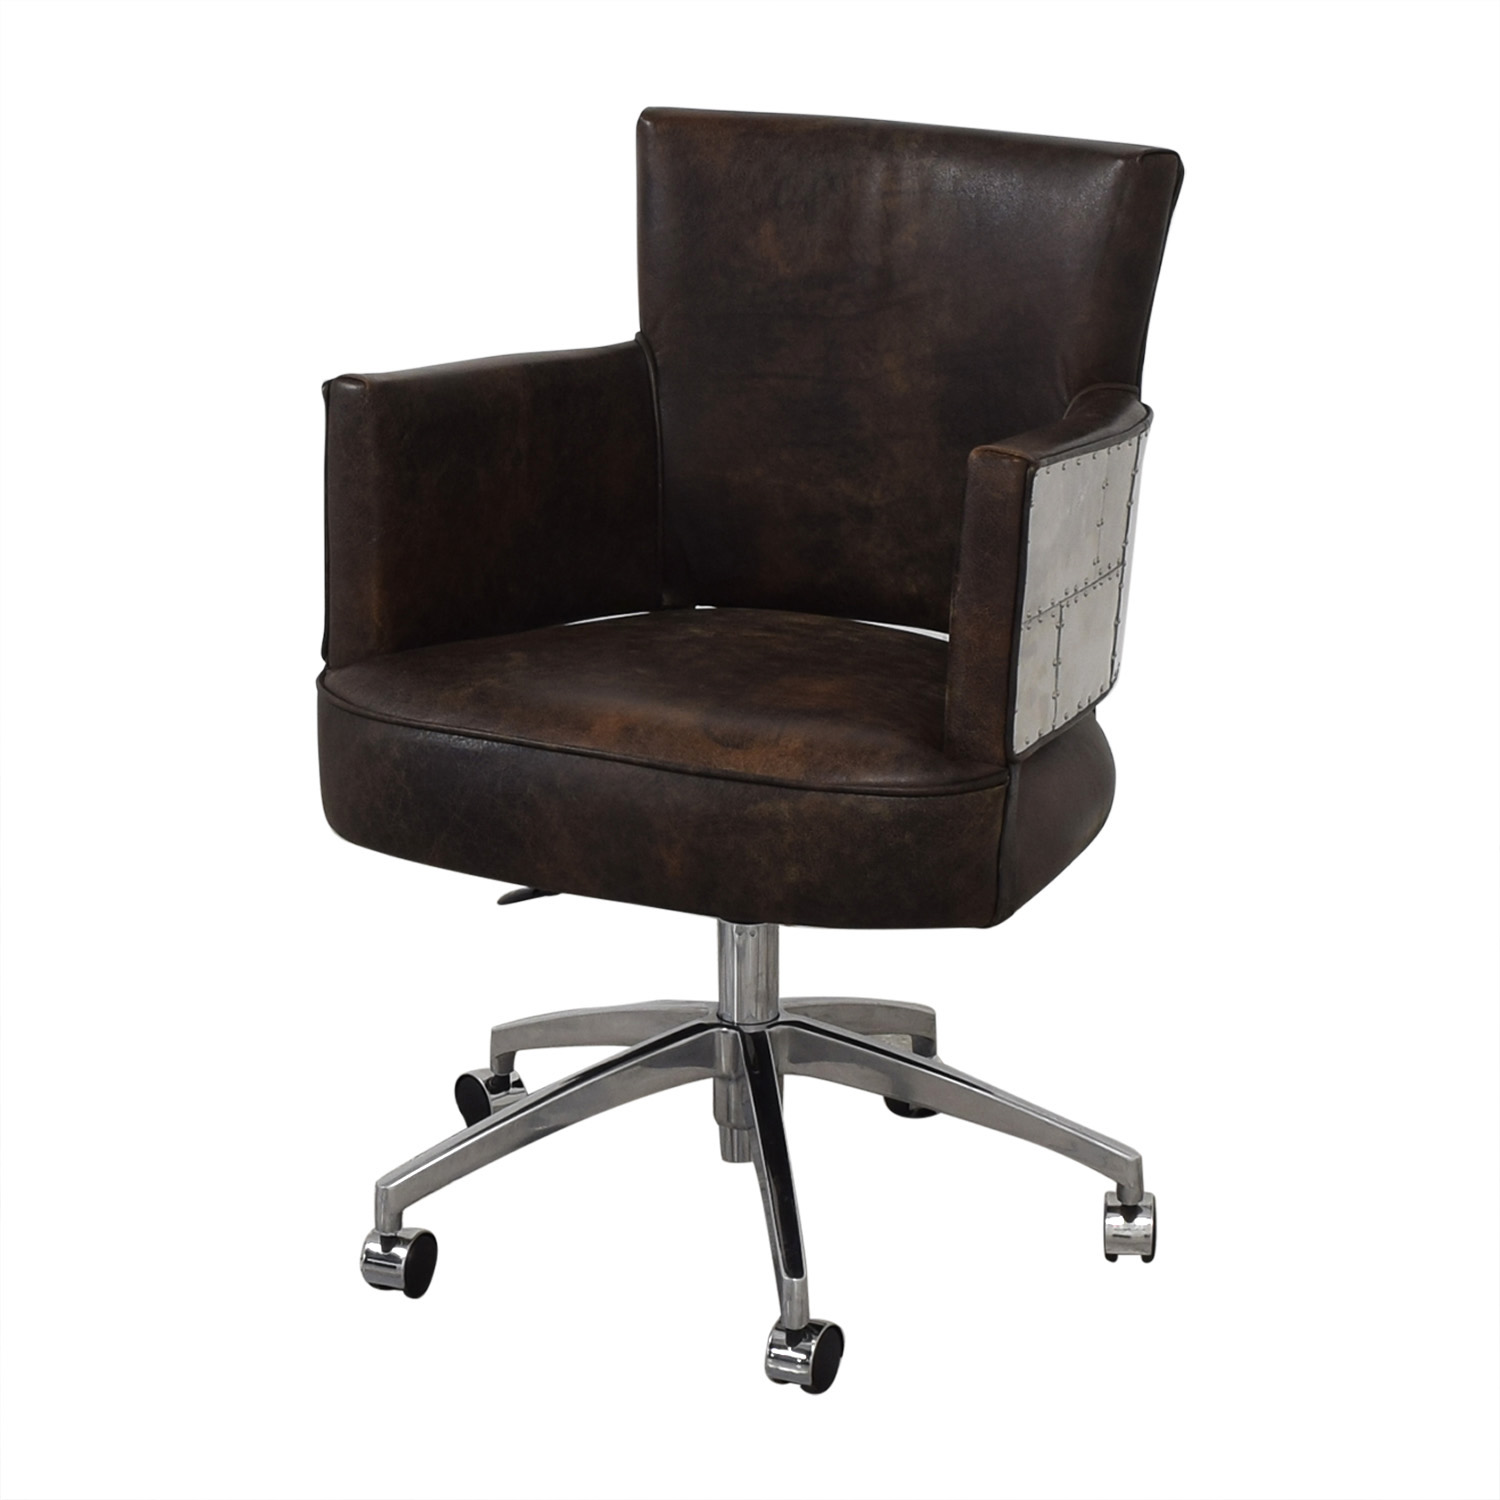 Timothy Oulton Timothy Oulton Swinderby Chair discount